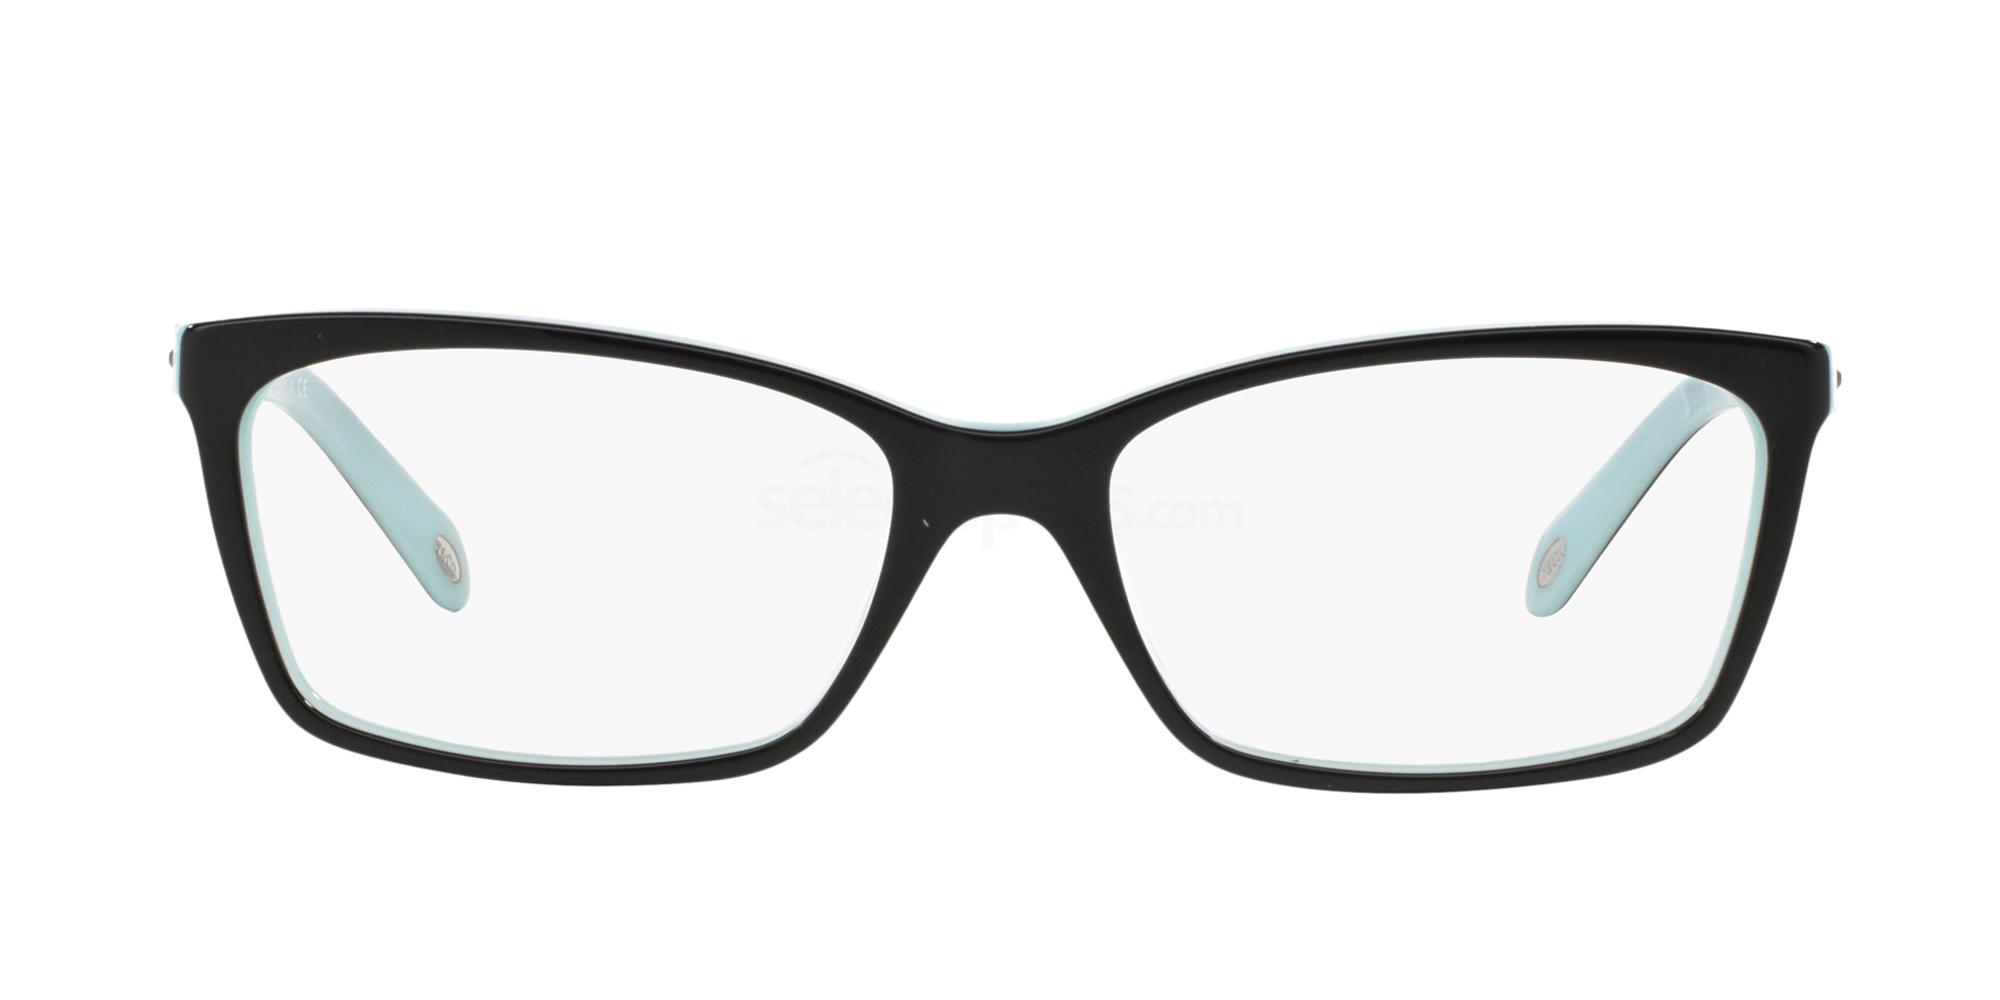 8055 TF2103B Glasses, Tiffany & Co.